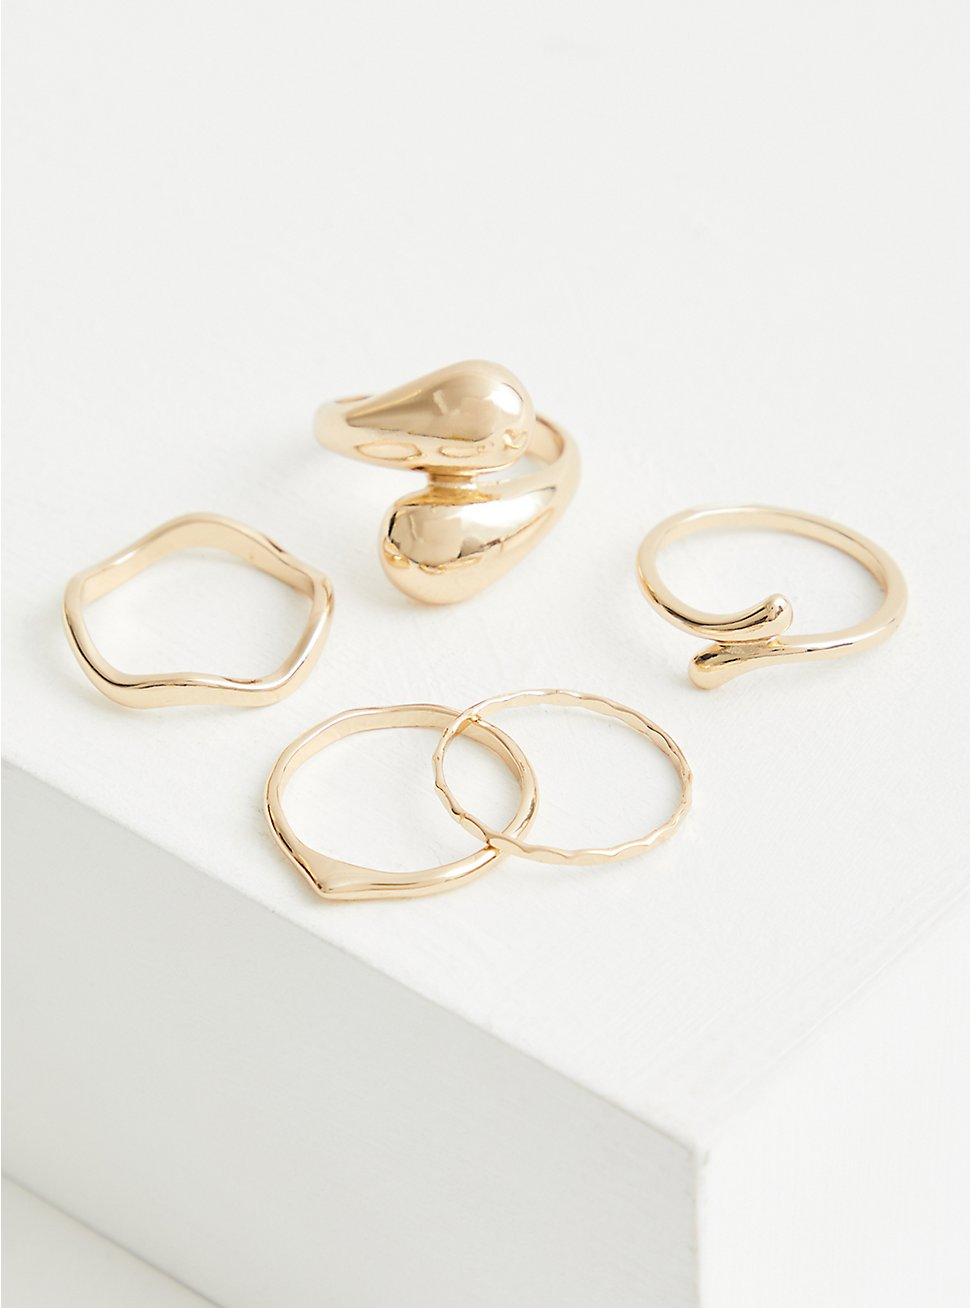 Crossover Ring Set of 5 - Gold Tone , GOLD, hi-res